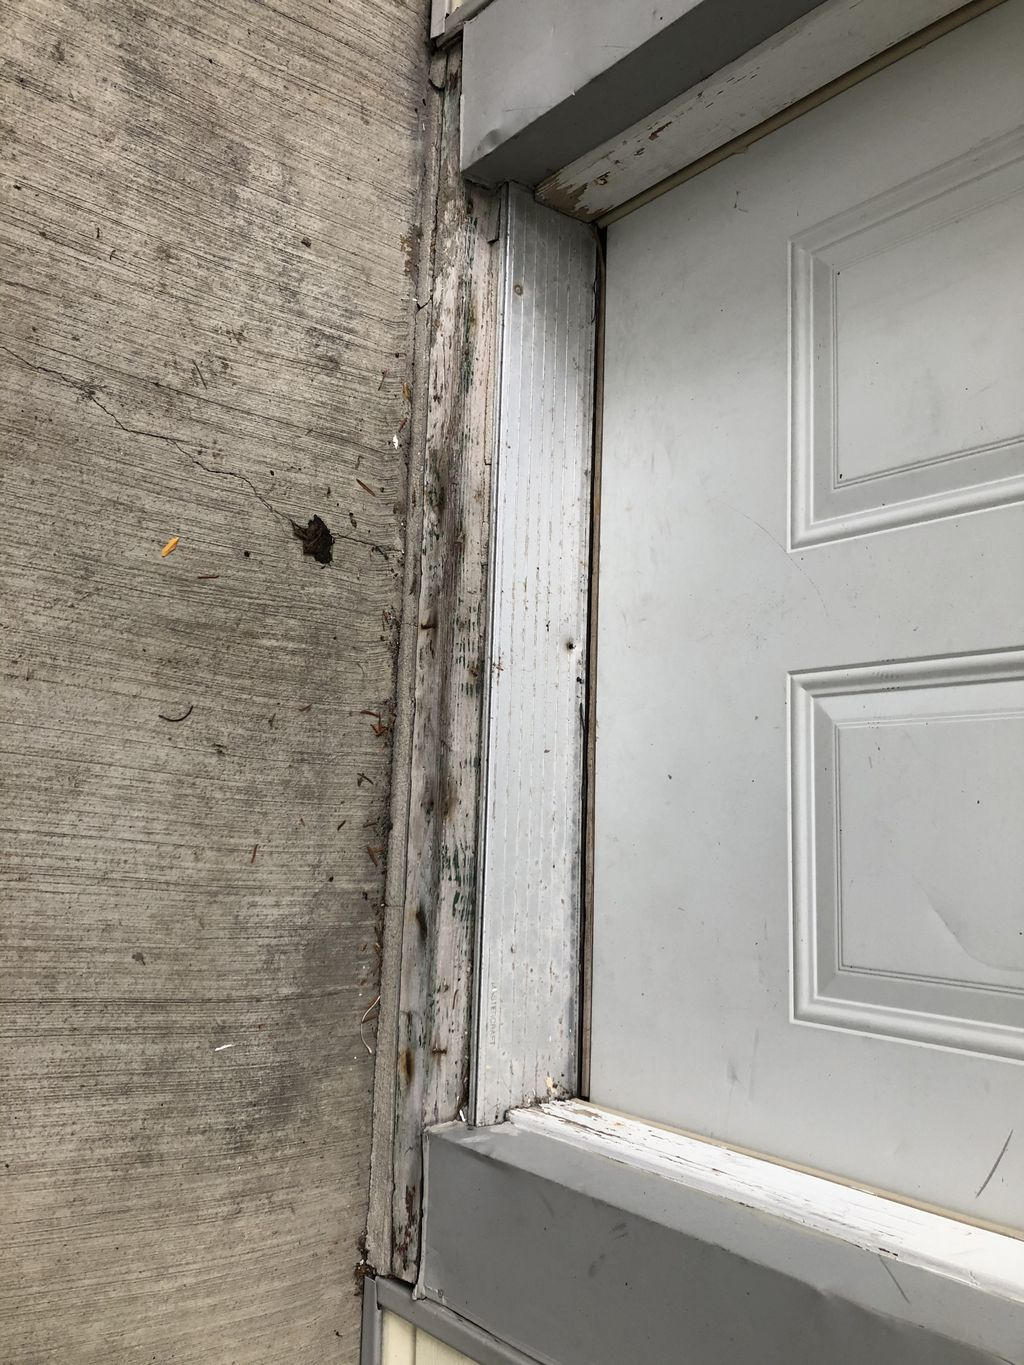 Entry Door Trim and Casing Replace